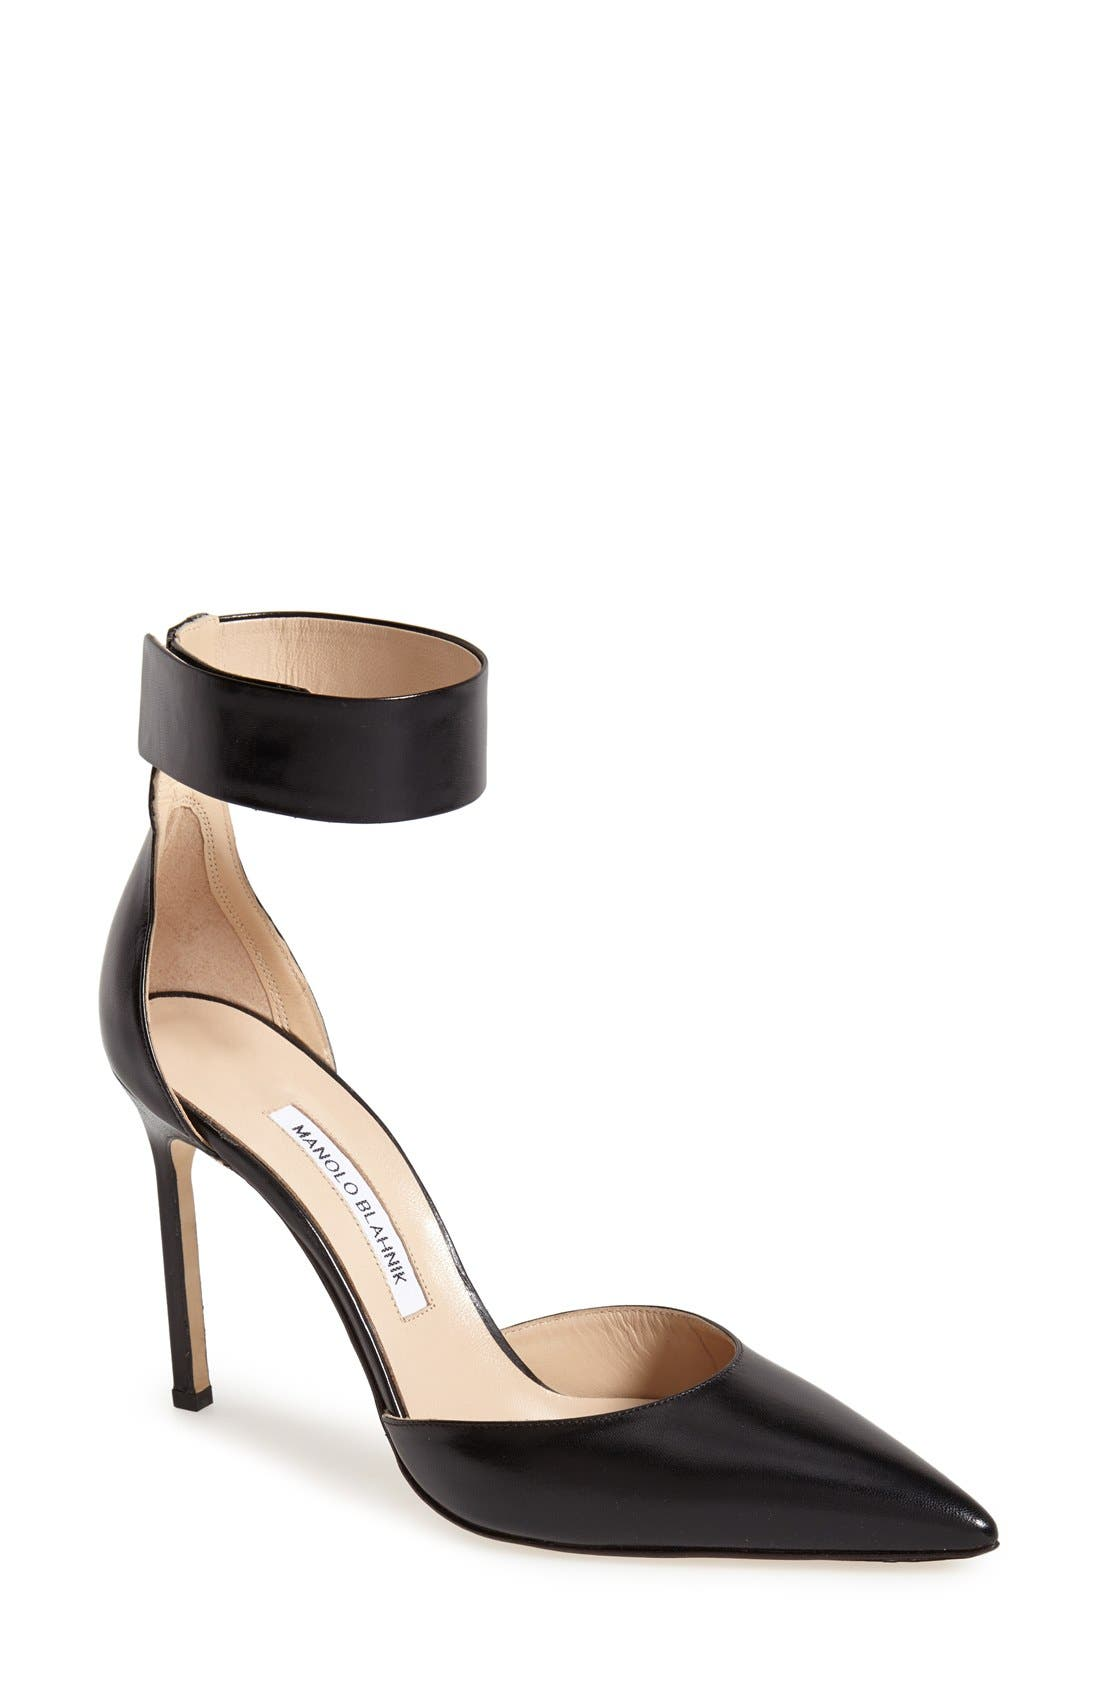 Alternate Image 1 Selected - Manolo Blahnik 'Ollico' Ankle Cuff d'Orsay Pump (Women)